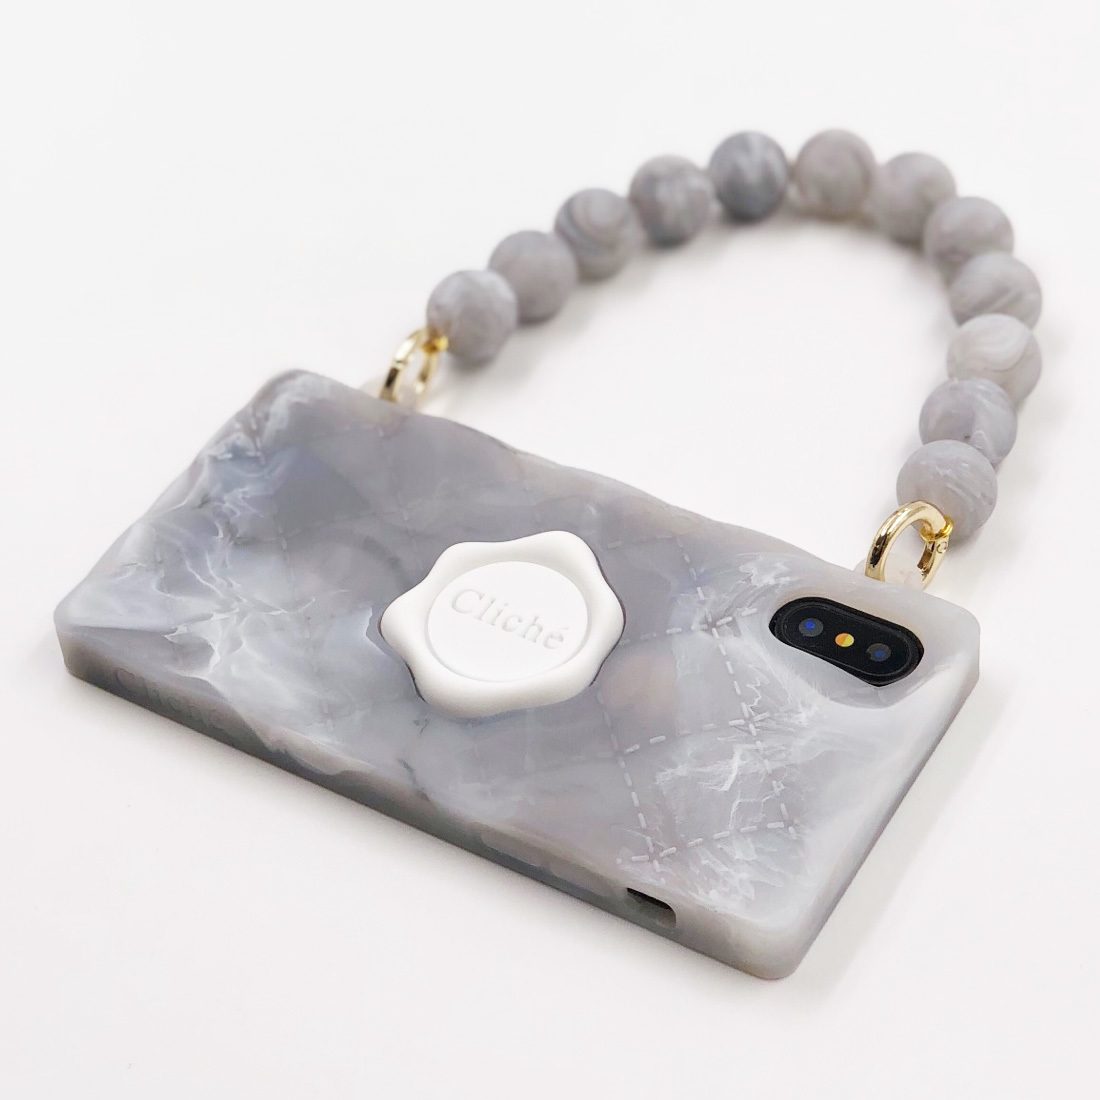 MARBLE SEAL STAMPED for iPhoneXS/X